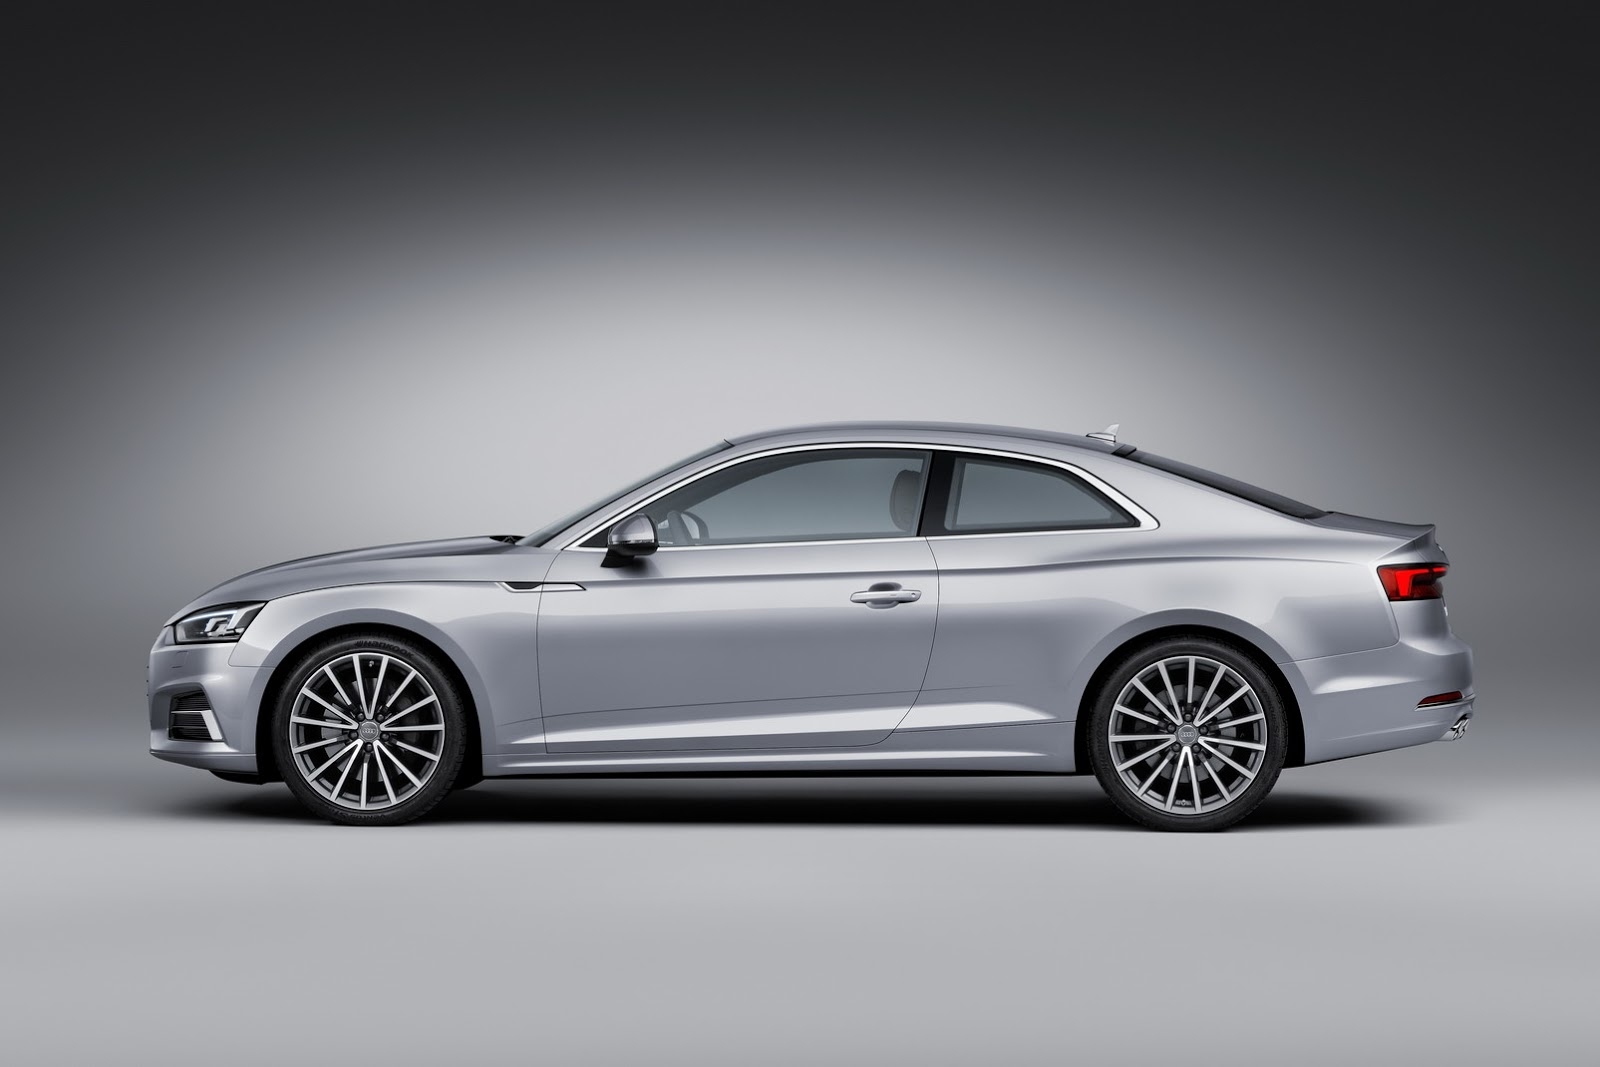 2017 audi a5 coupe has classic proportions and 286 hp 3 0 tdi